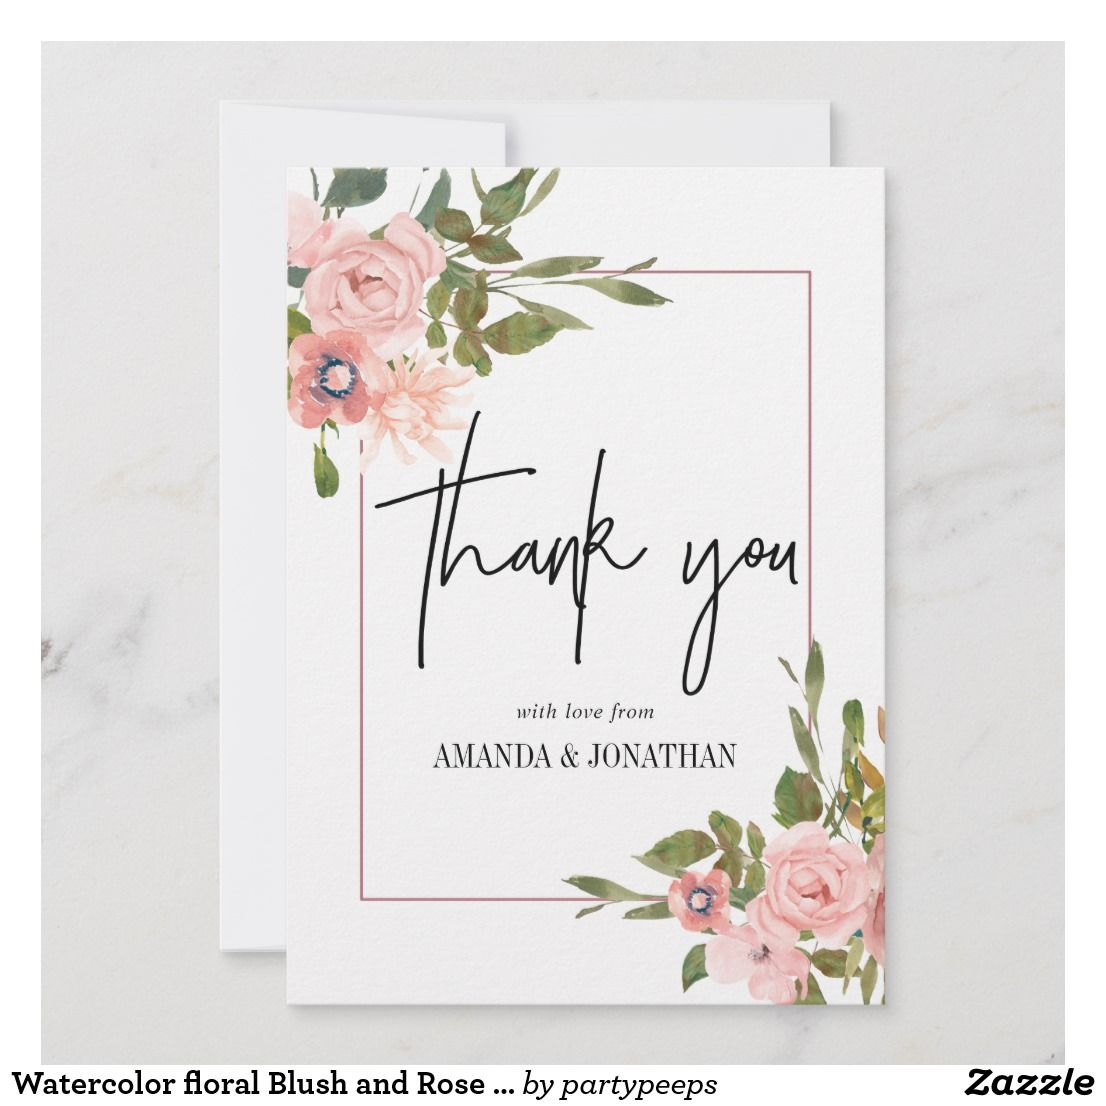 Watercolor Floral Blush And Rose Gold Thank You Zazzle Com With